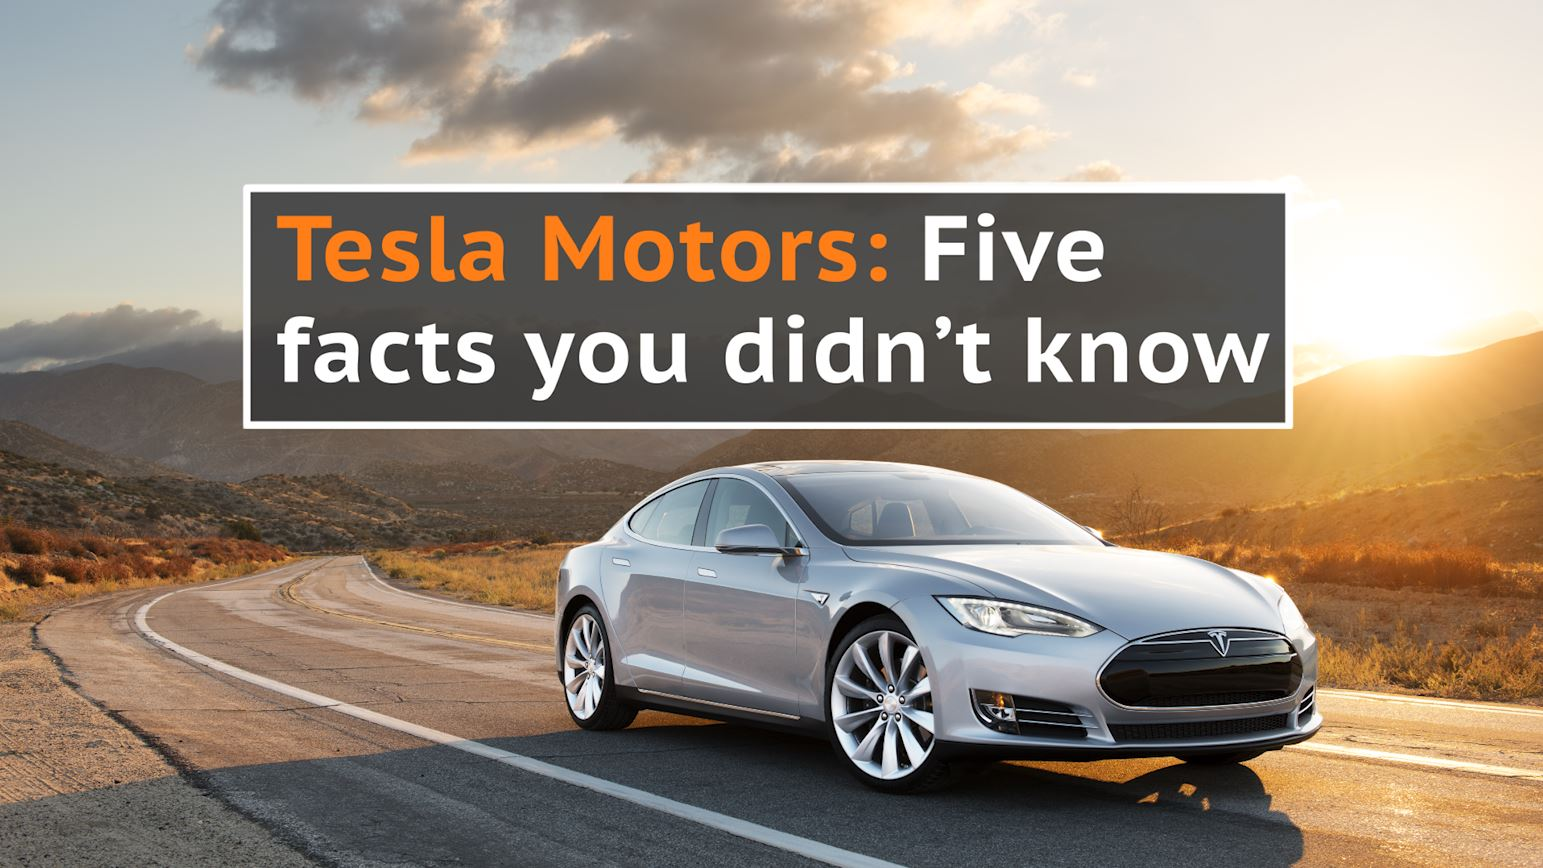 Tesla Motors: Five facts you didn't know